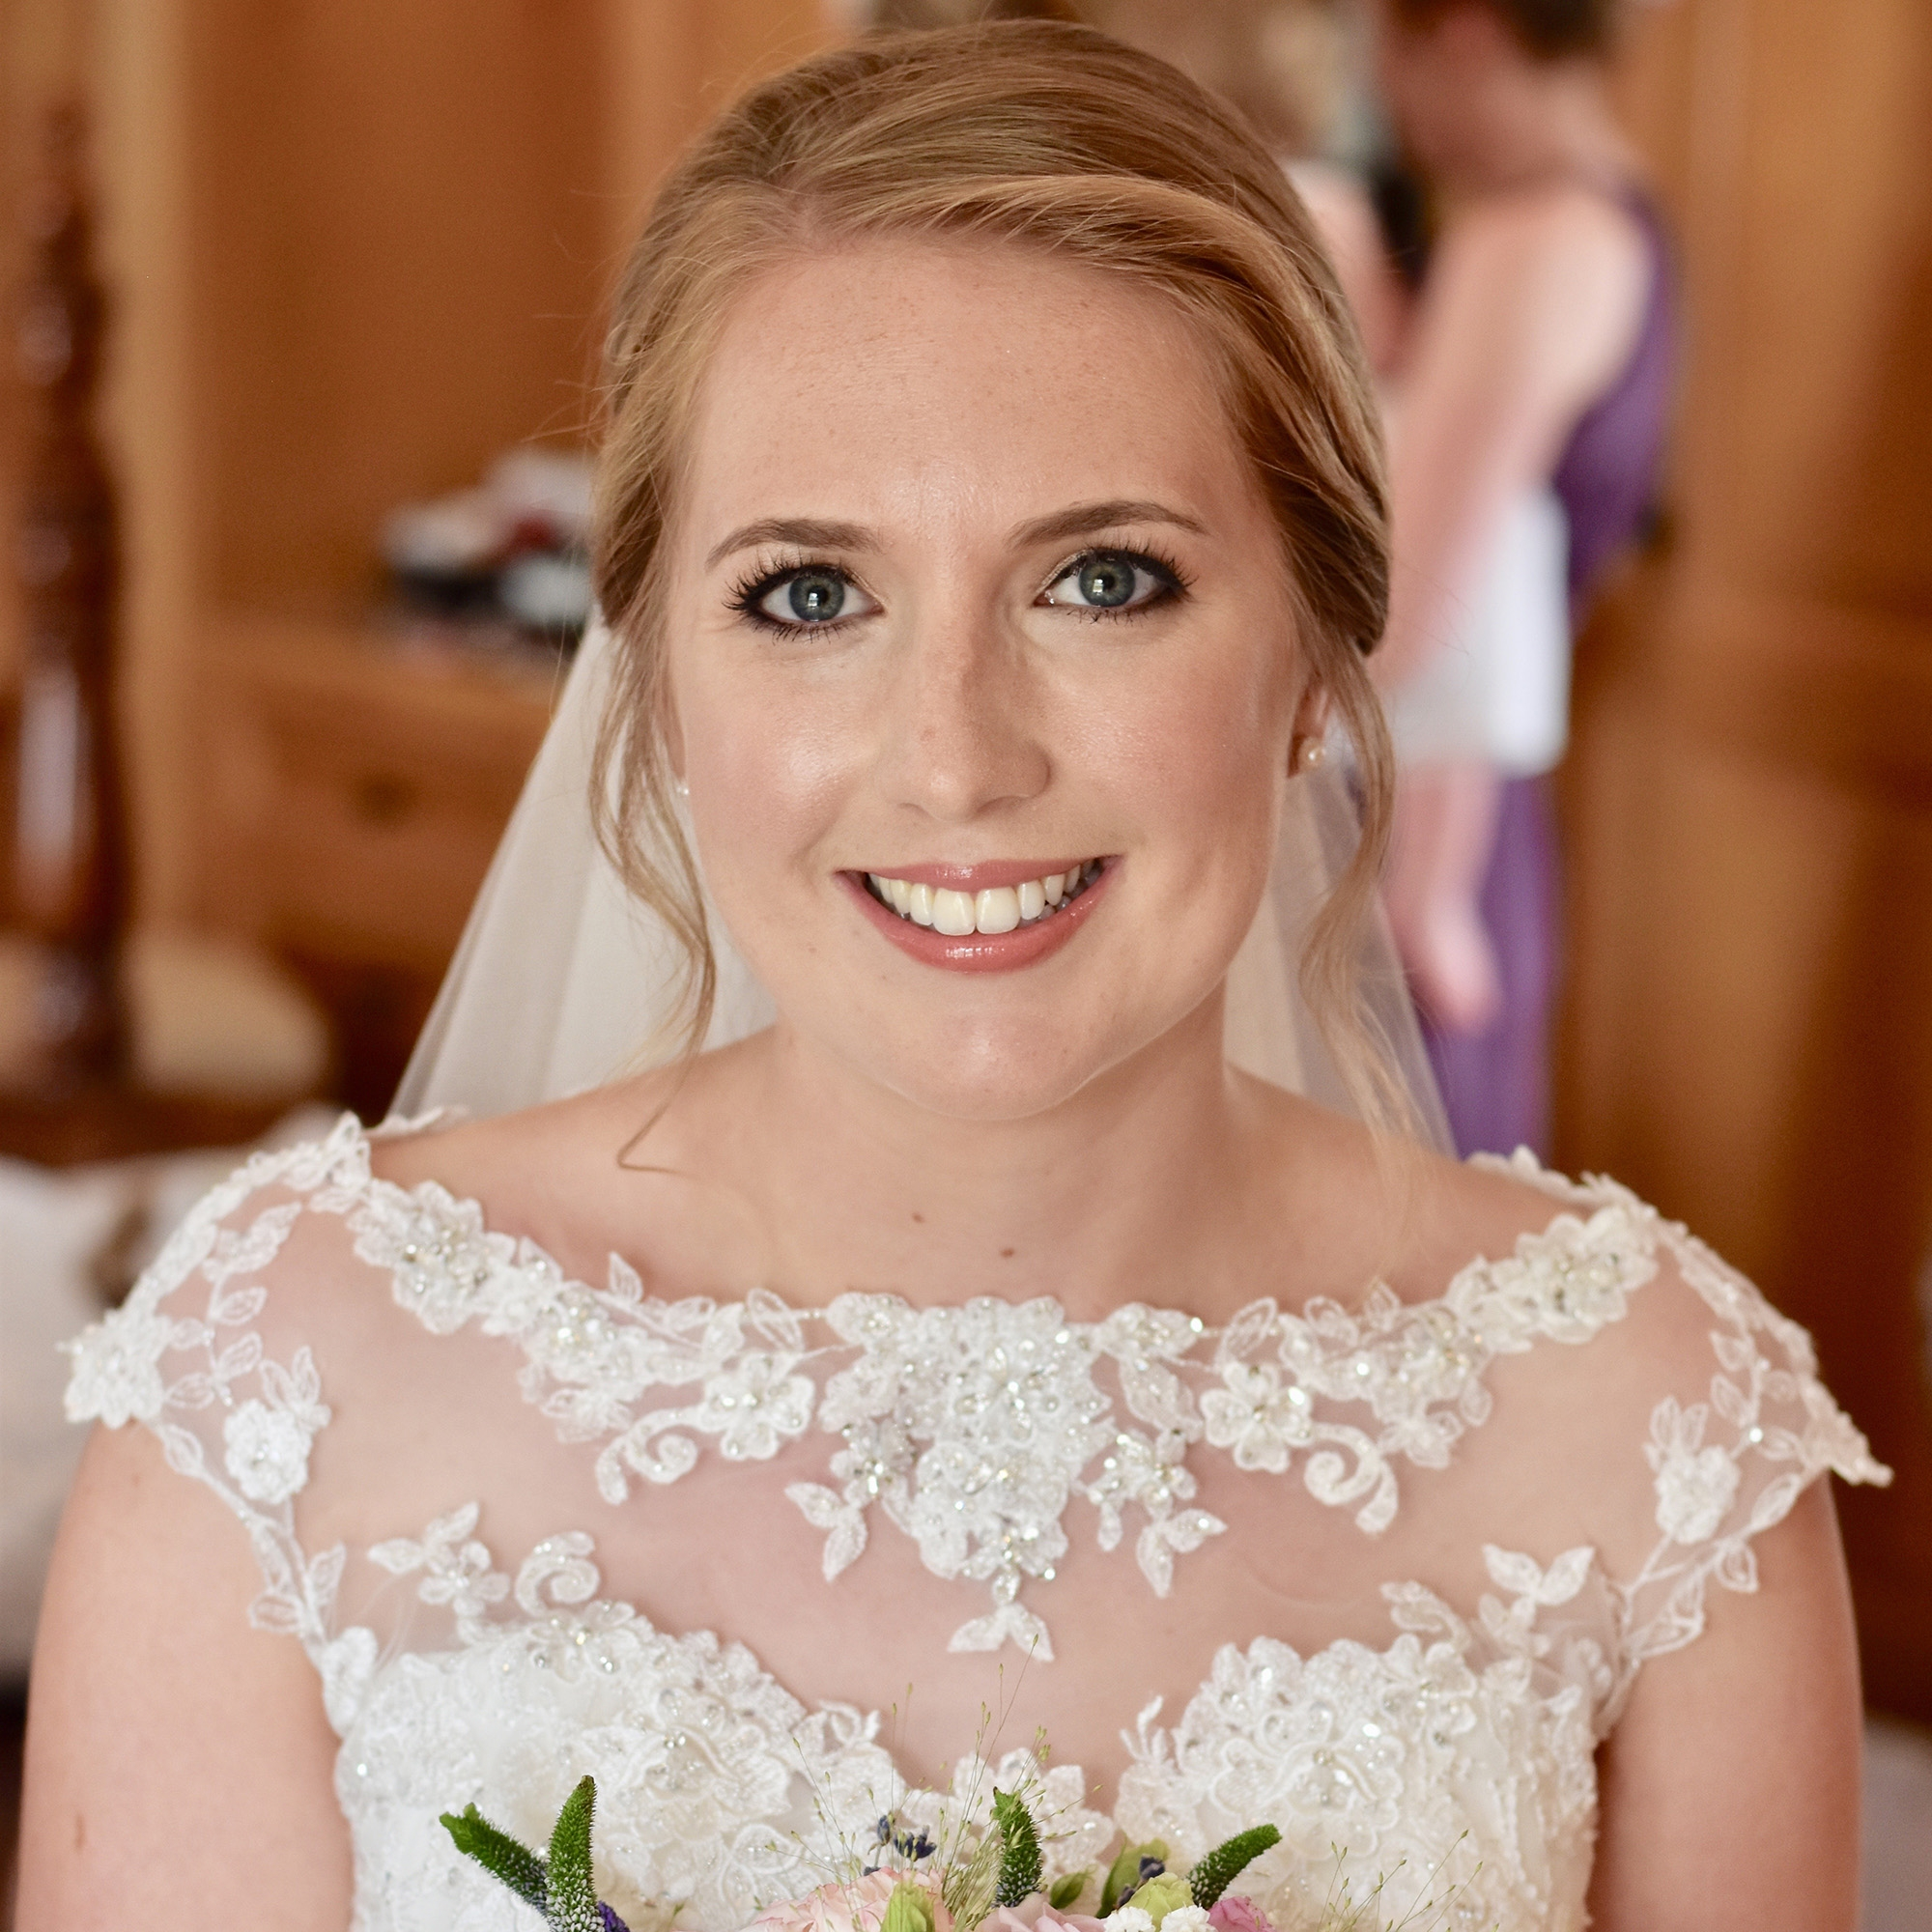 Perfect wedding makeup for blue eyes and blonde golden hair by Caroline Kent professional makeup artist.jpg